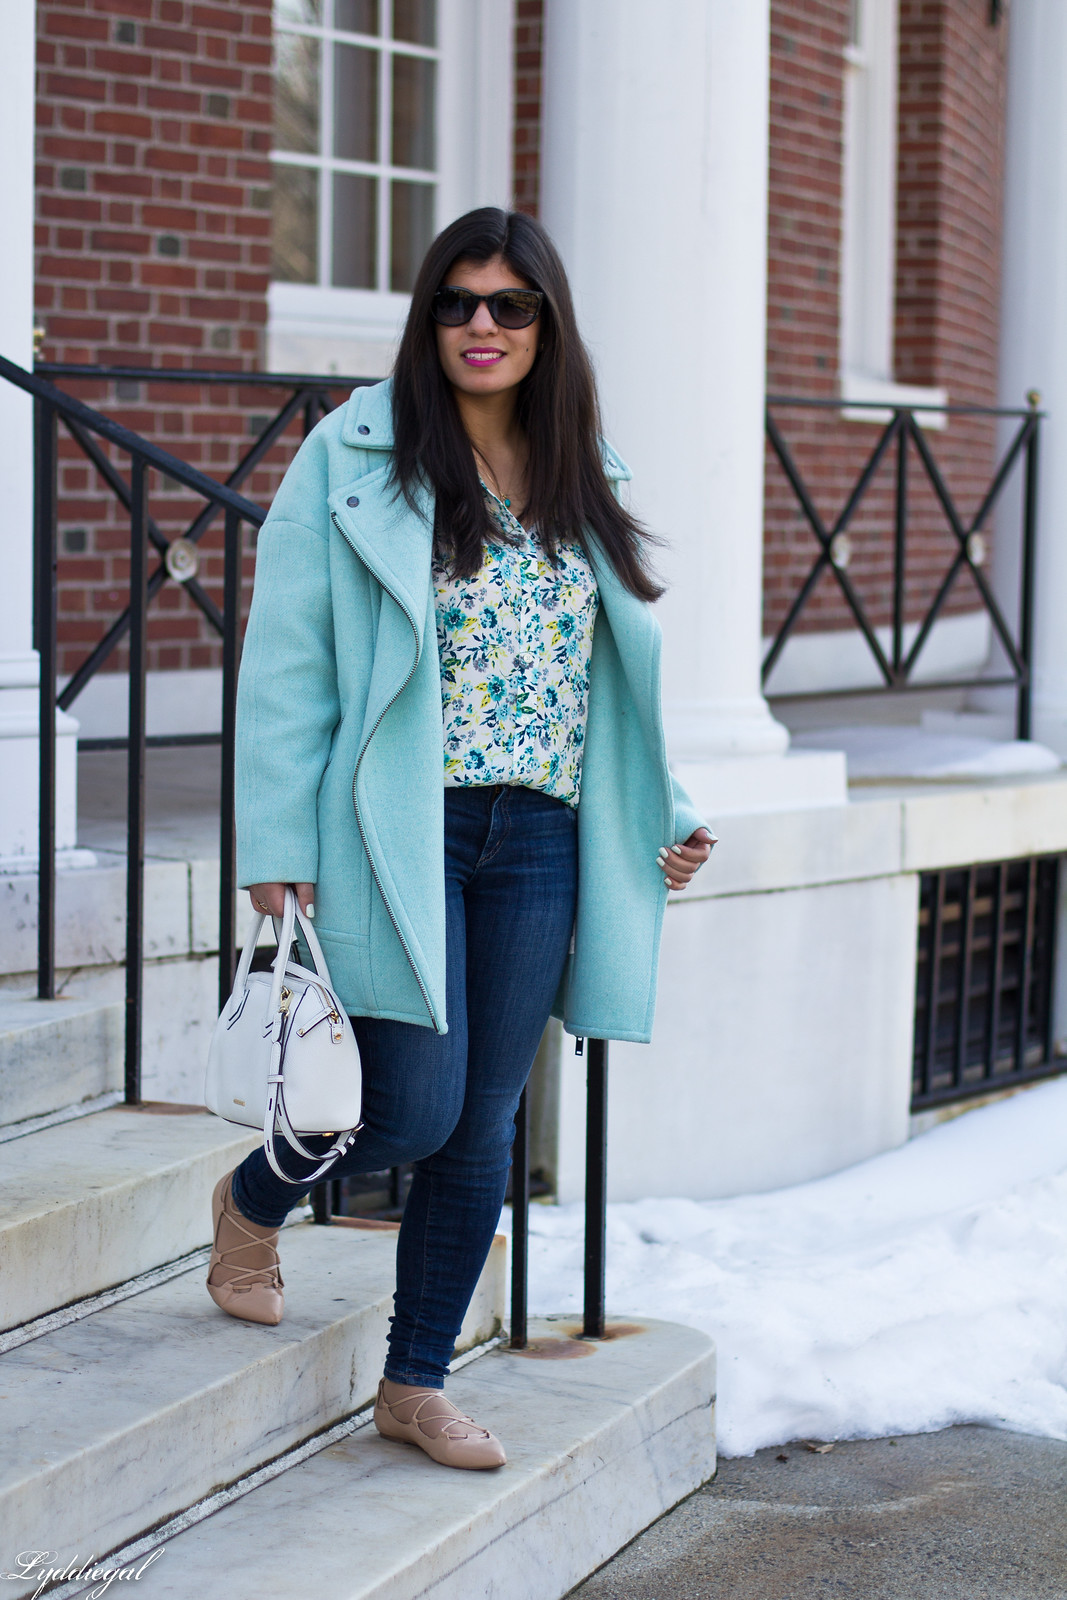 mint green cocoon coat, floral blouse, lace up flats, spring outfit-1.jpg